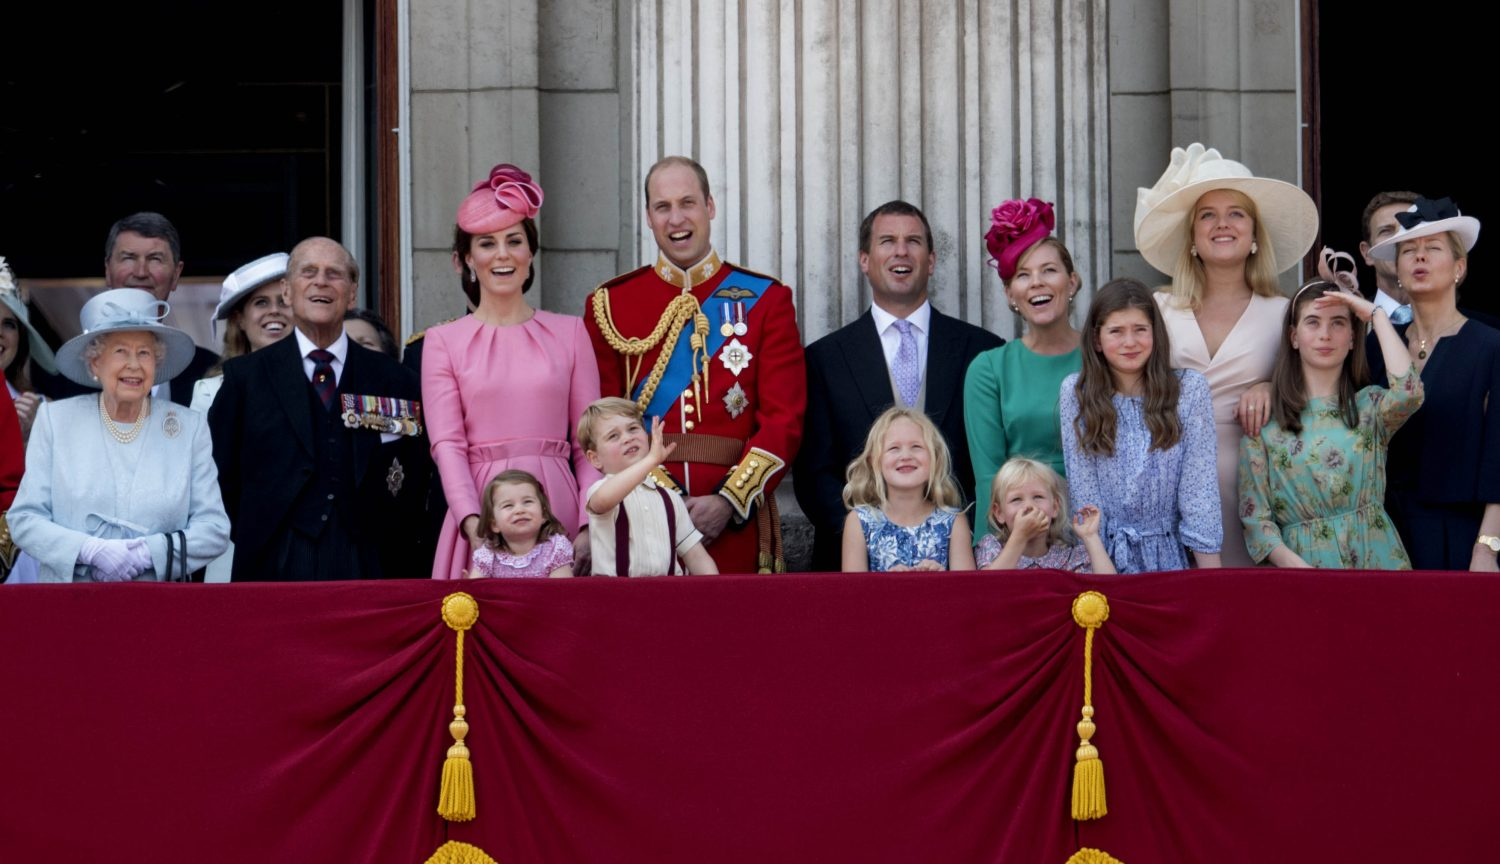 The Royal Family at Trooping the Colour in 2018. (Andrew Parsons / i-Images)